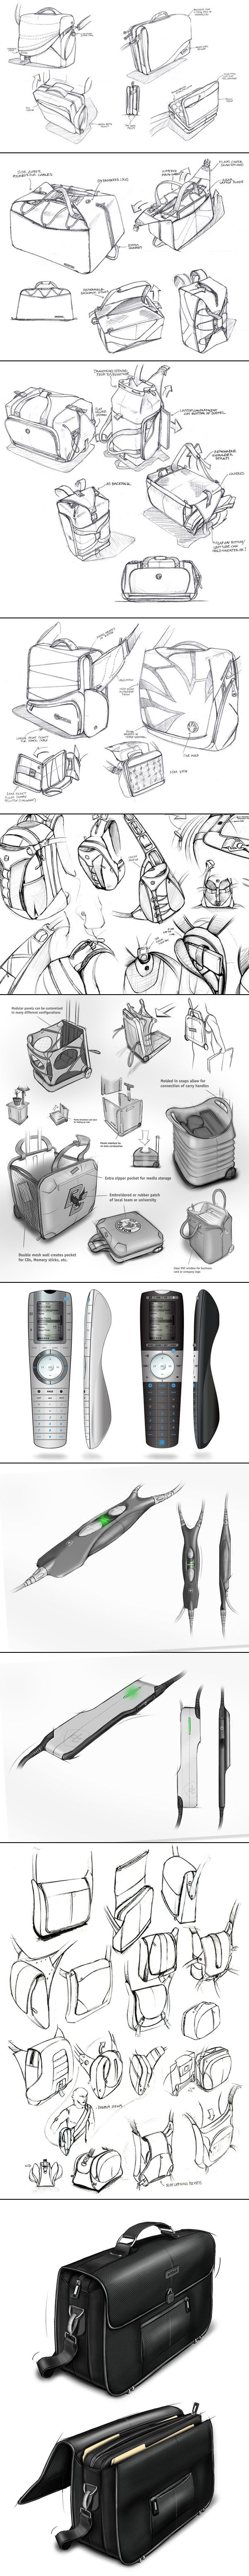 product design sketching, sketches, soft goods sketching, bag design. studioFAR - Soft G - created via http://pinthemall.net: